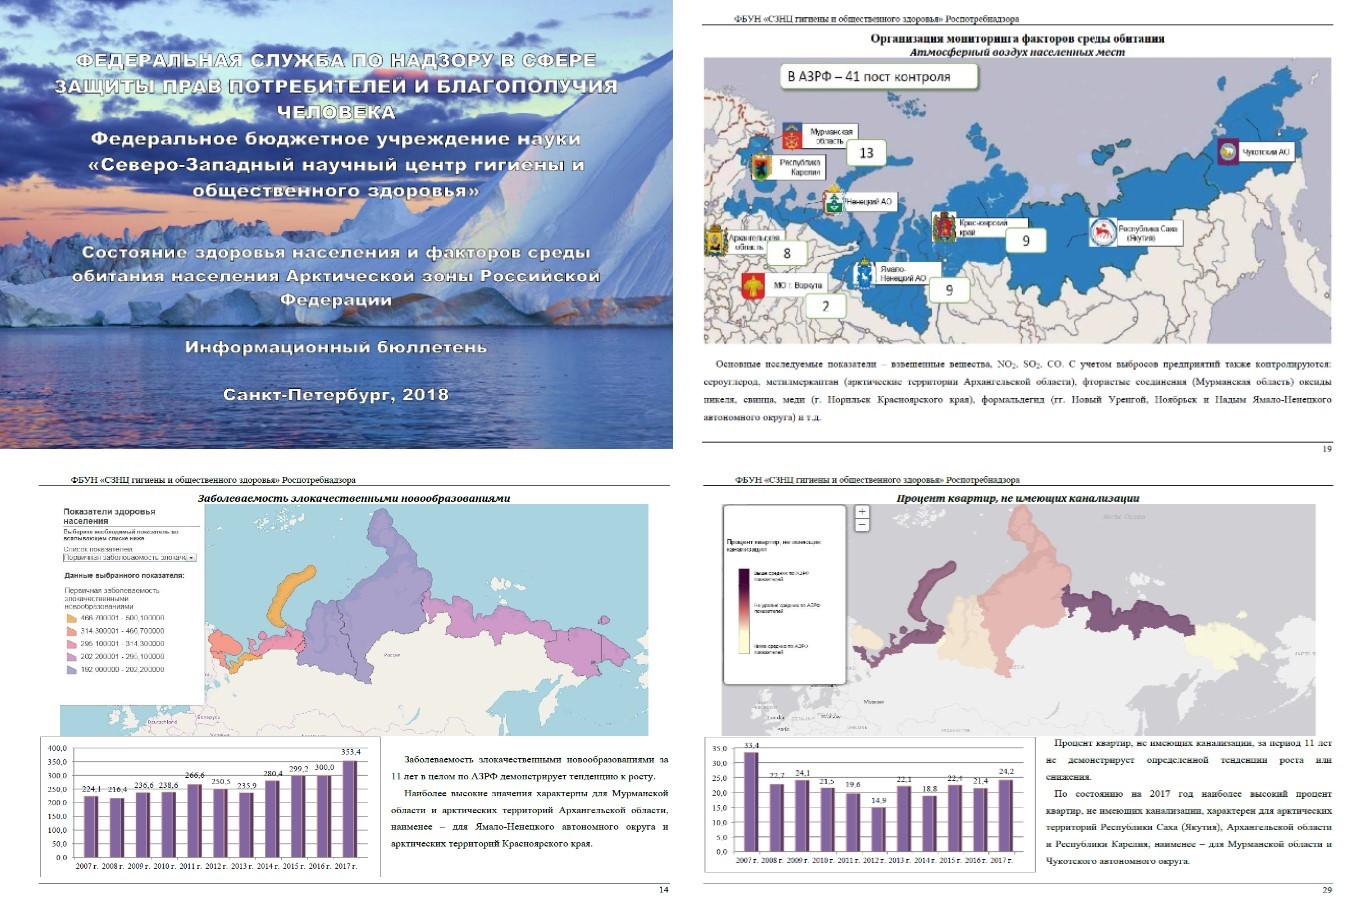 Experience of systematizing data on the state of sanitary and epidemiological well-being of the population in the Russian Arctic